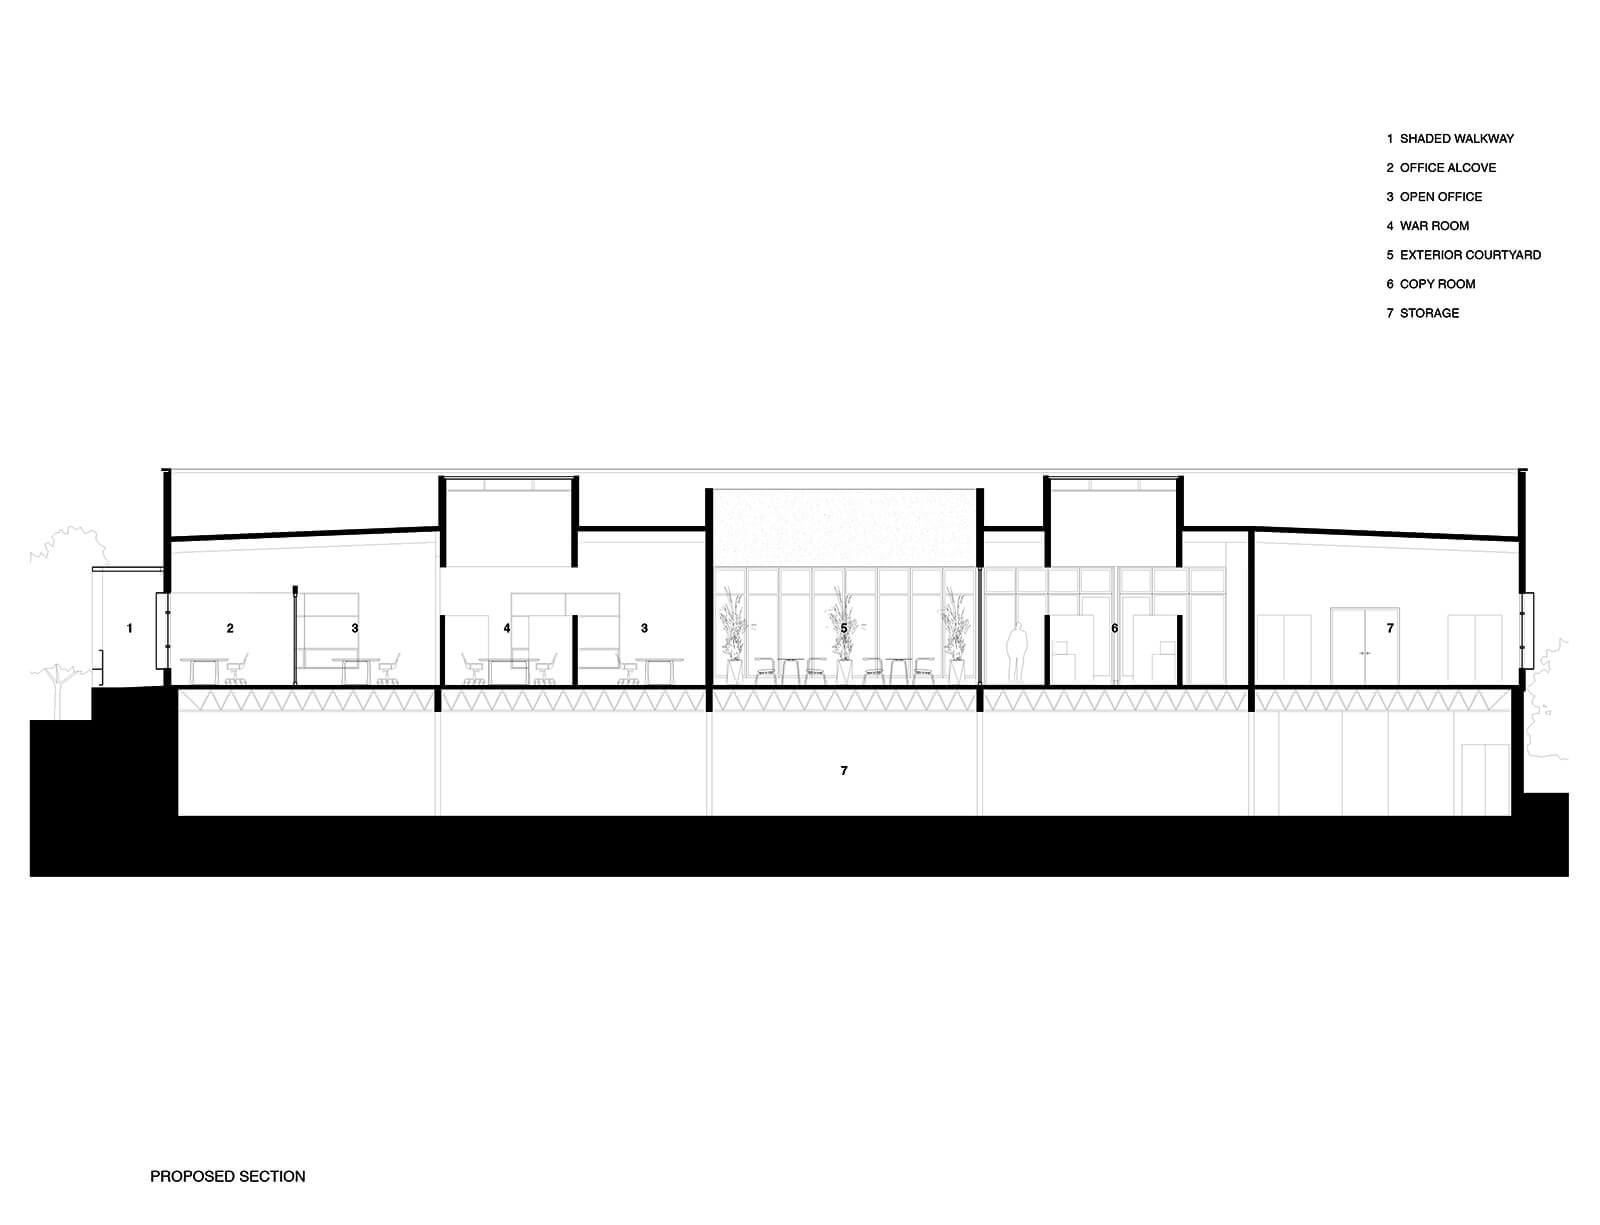 studio vara workplace redwood highway drawing proposed section